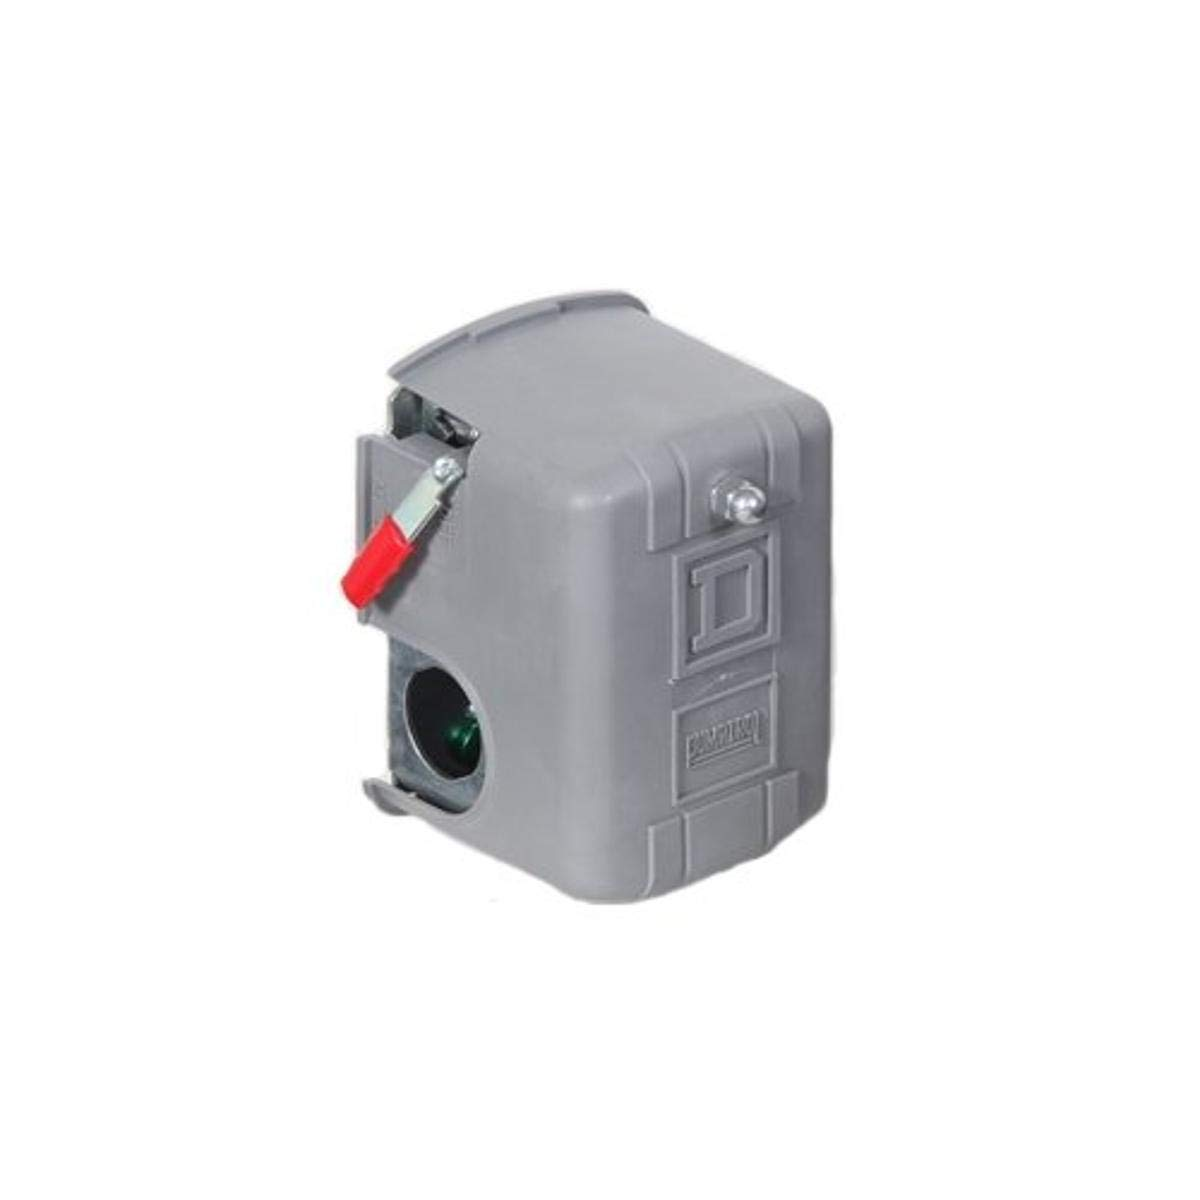 Midwest Control Spasm Max 50% OFF price 9013FHG-22J27M1 Square D with Pressure Switch On